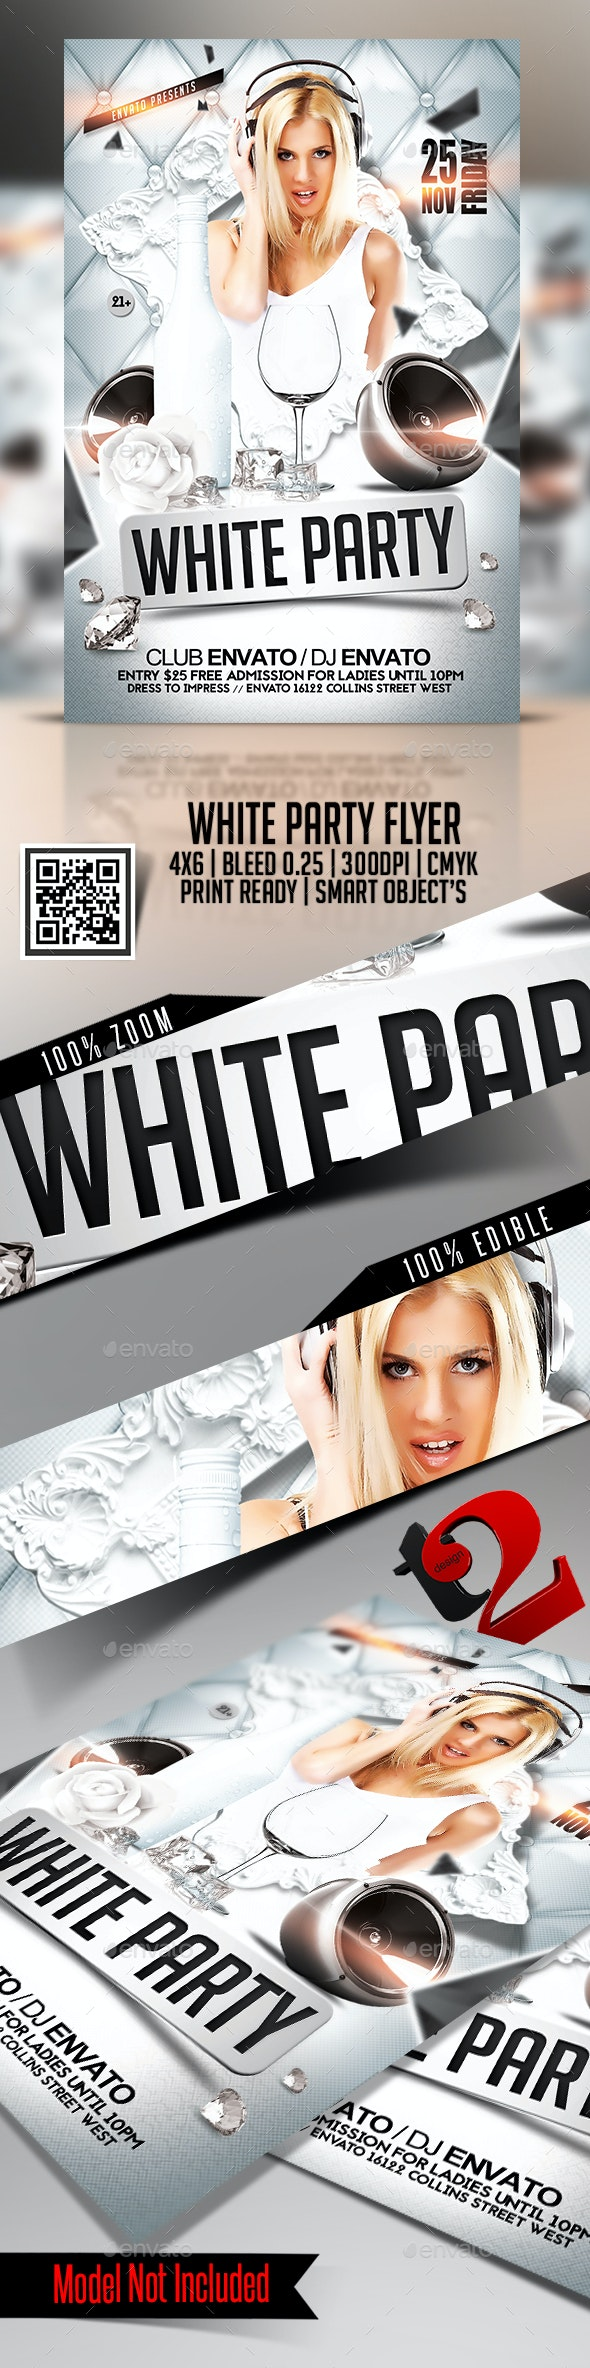 White Party Flyer - Template - Clubs & Parties Events